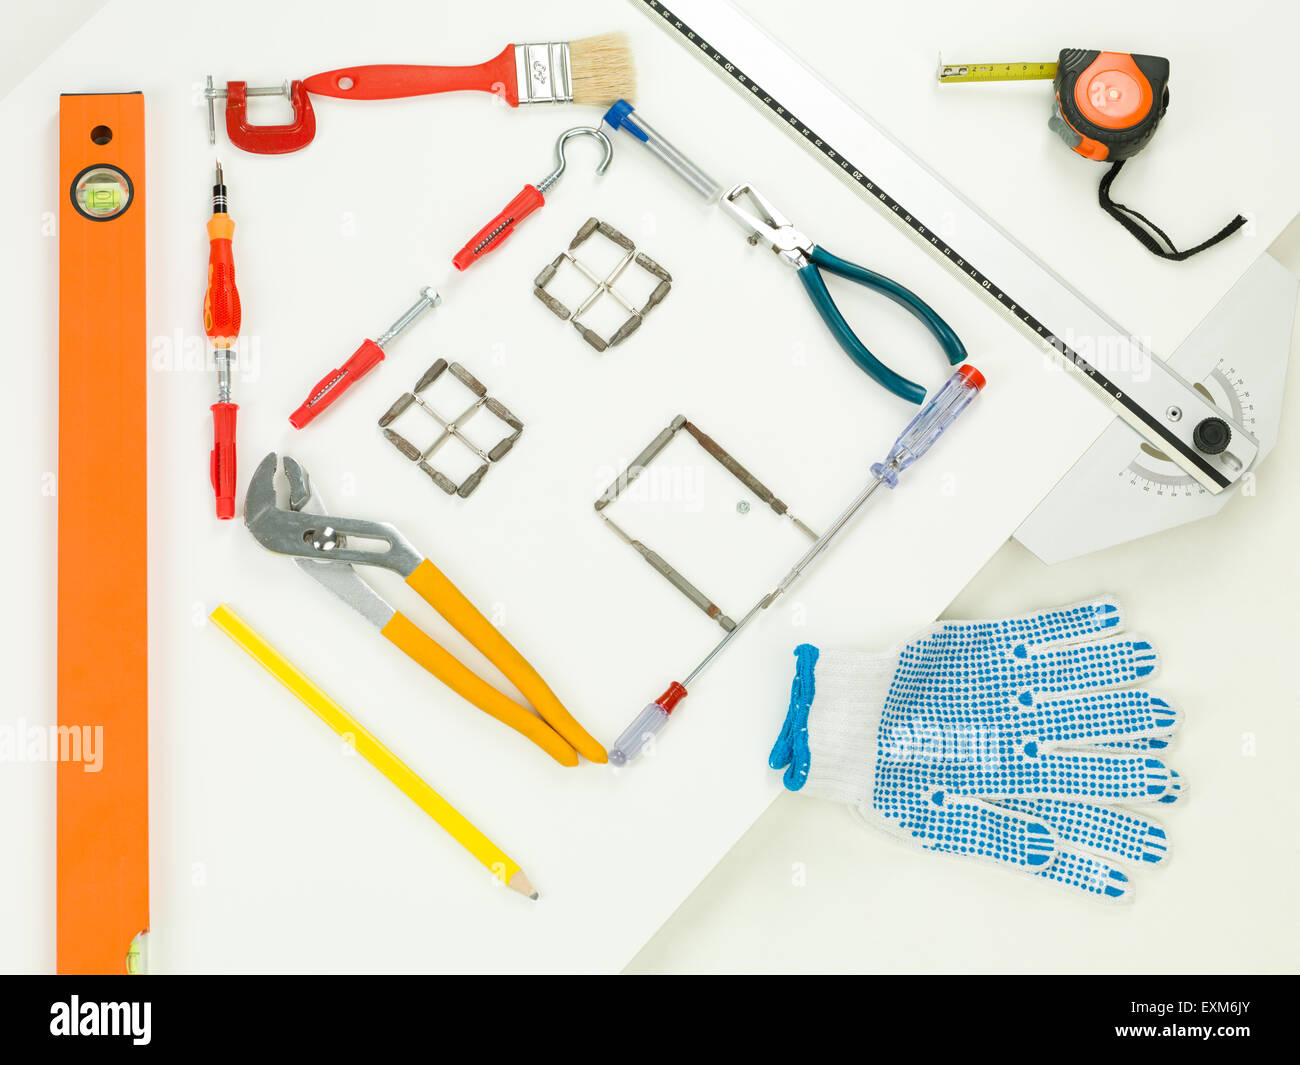 shape of house made with household and construction tools, on white background. perspective view - Stock Image